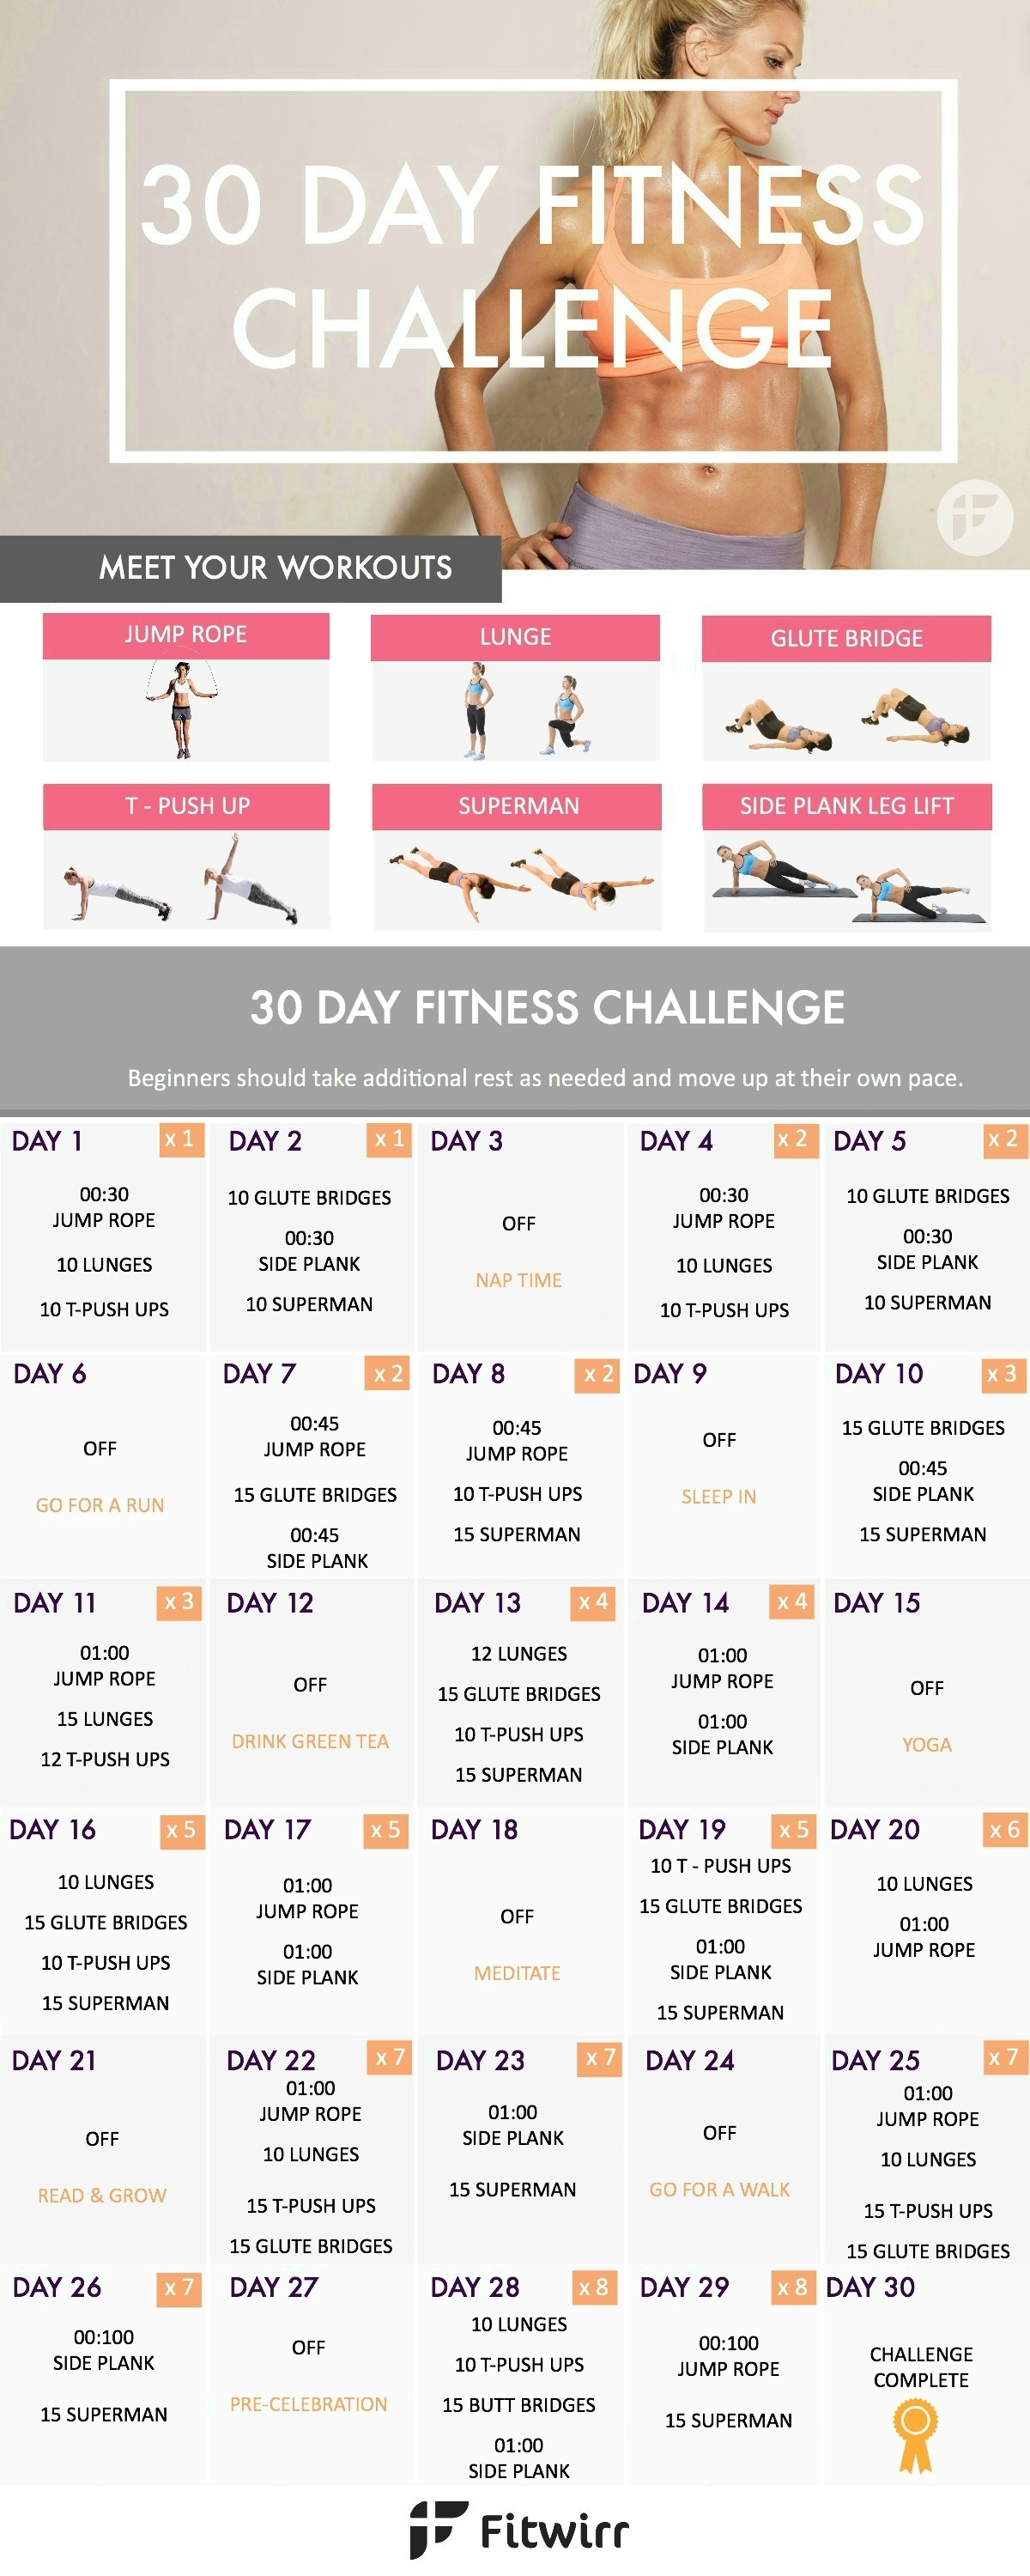 30 Day Fitness Challenge - Transform Your Body In 30 Days  30 Day Fitness Challenges Printable Charts